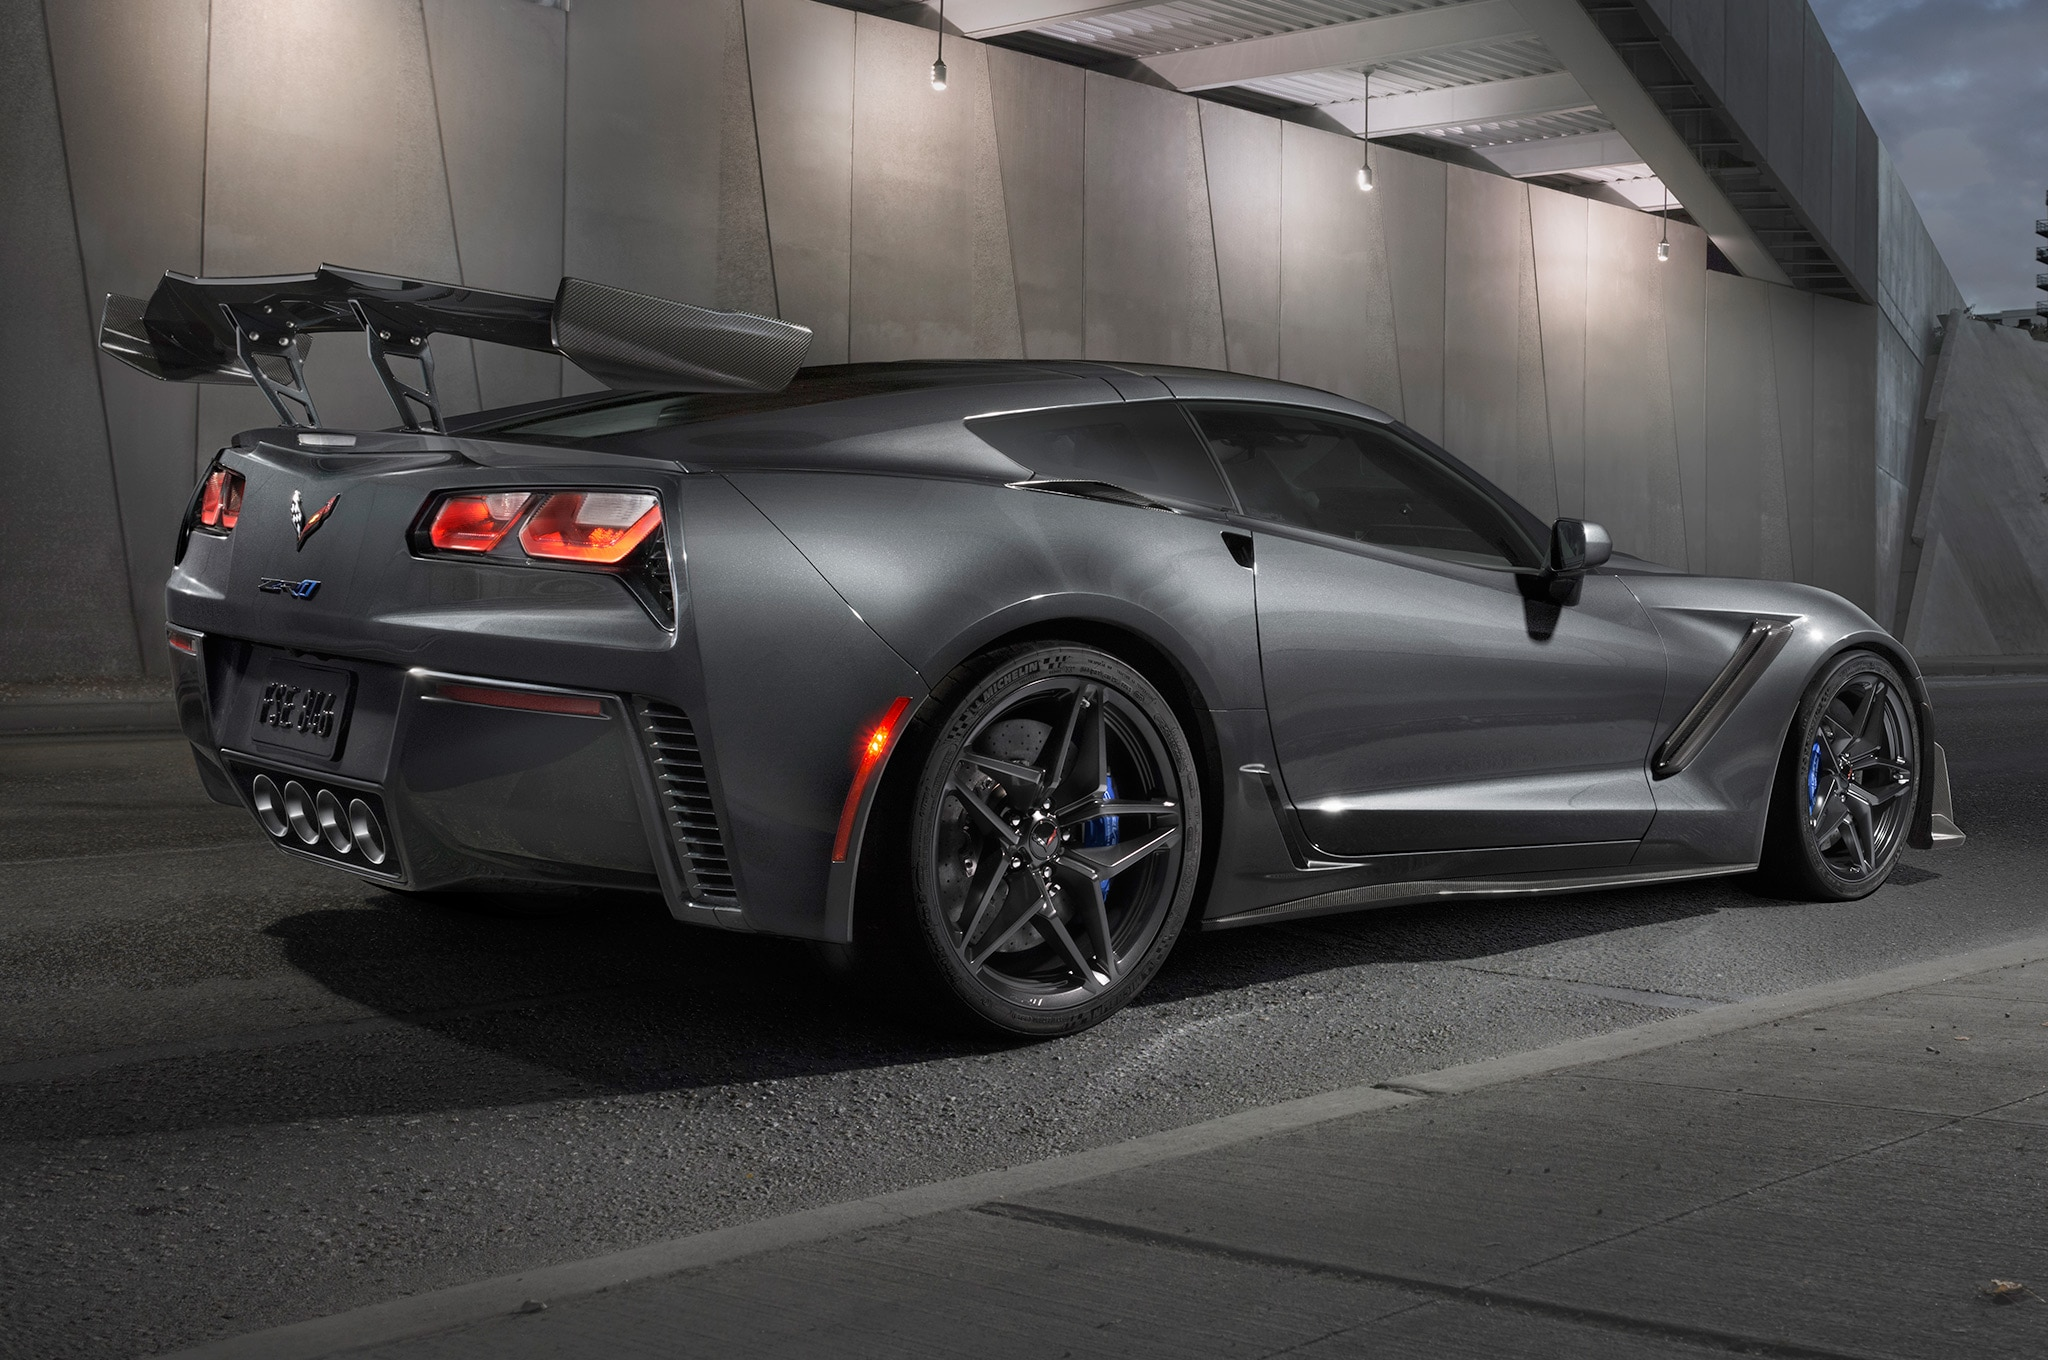 With the new 2019 Corvette ZR1, Chevy builds the best 'Vette yet